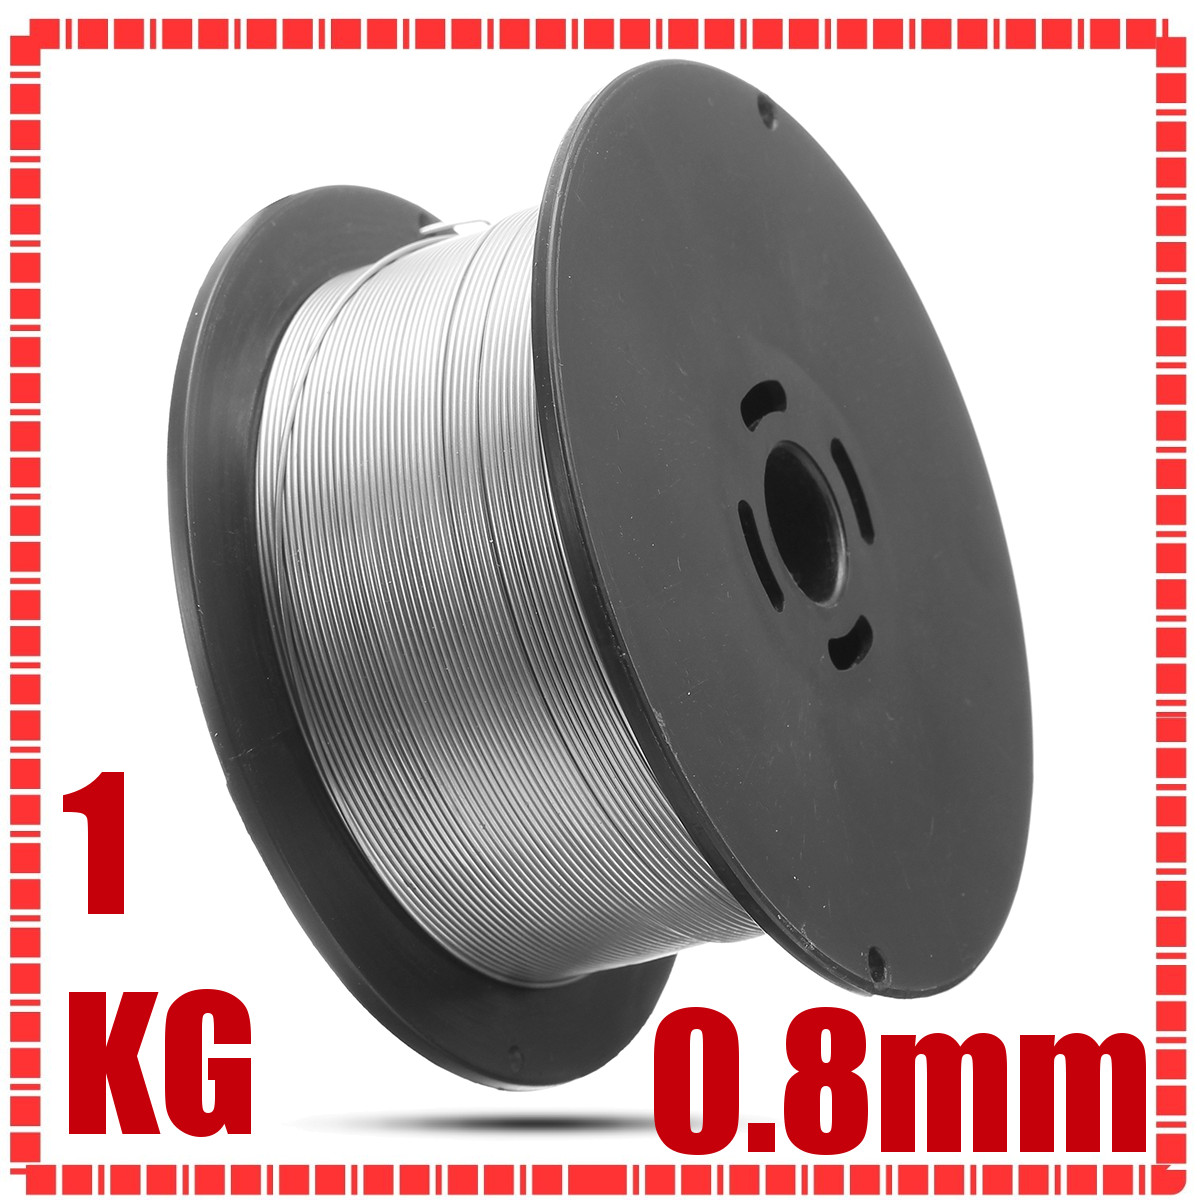 1 Roll Stainless Steel Gasless Mig Welding Wires 1kg 0.8mm Flux Cored Welding Accessories For Food General Chemical Equipment1 Roll Stainless Steel Gasless Mig Welding Wires 1kg 0.8mm Flux Cored Welding Accessories For Food General Chemical Equipment